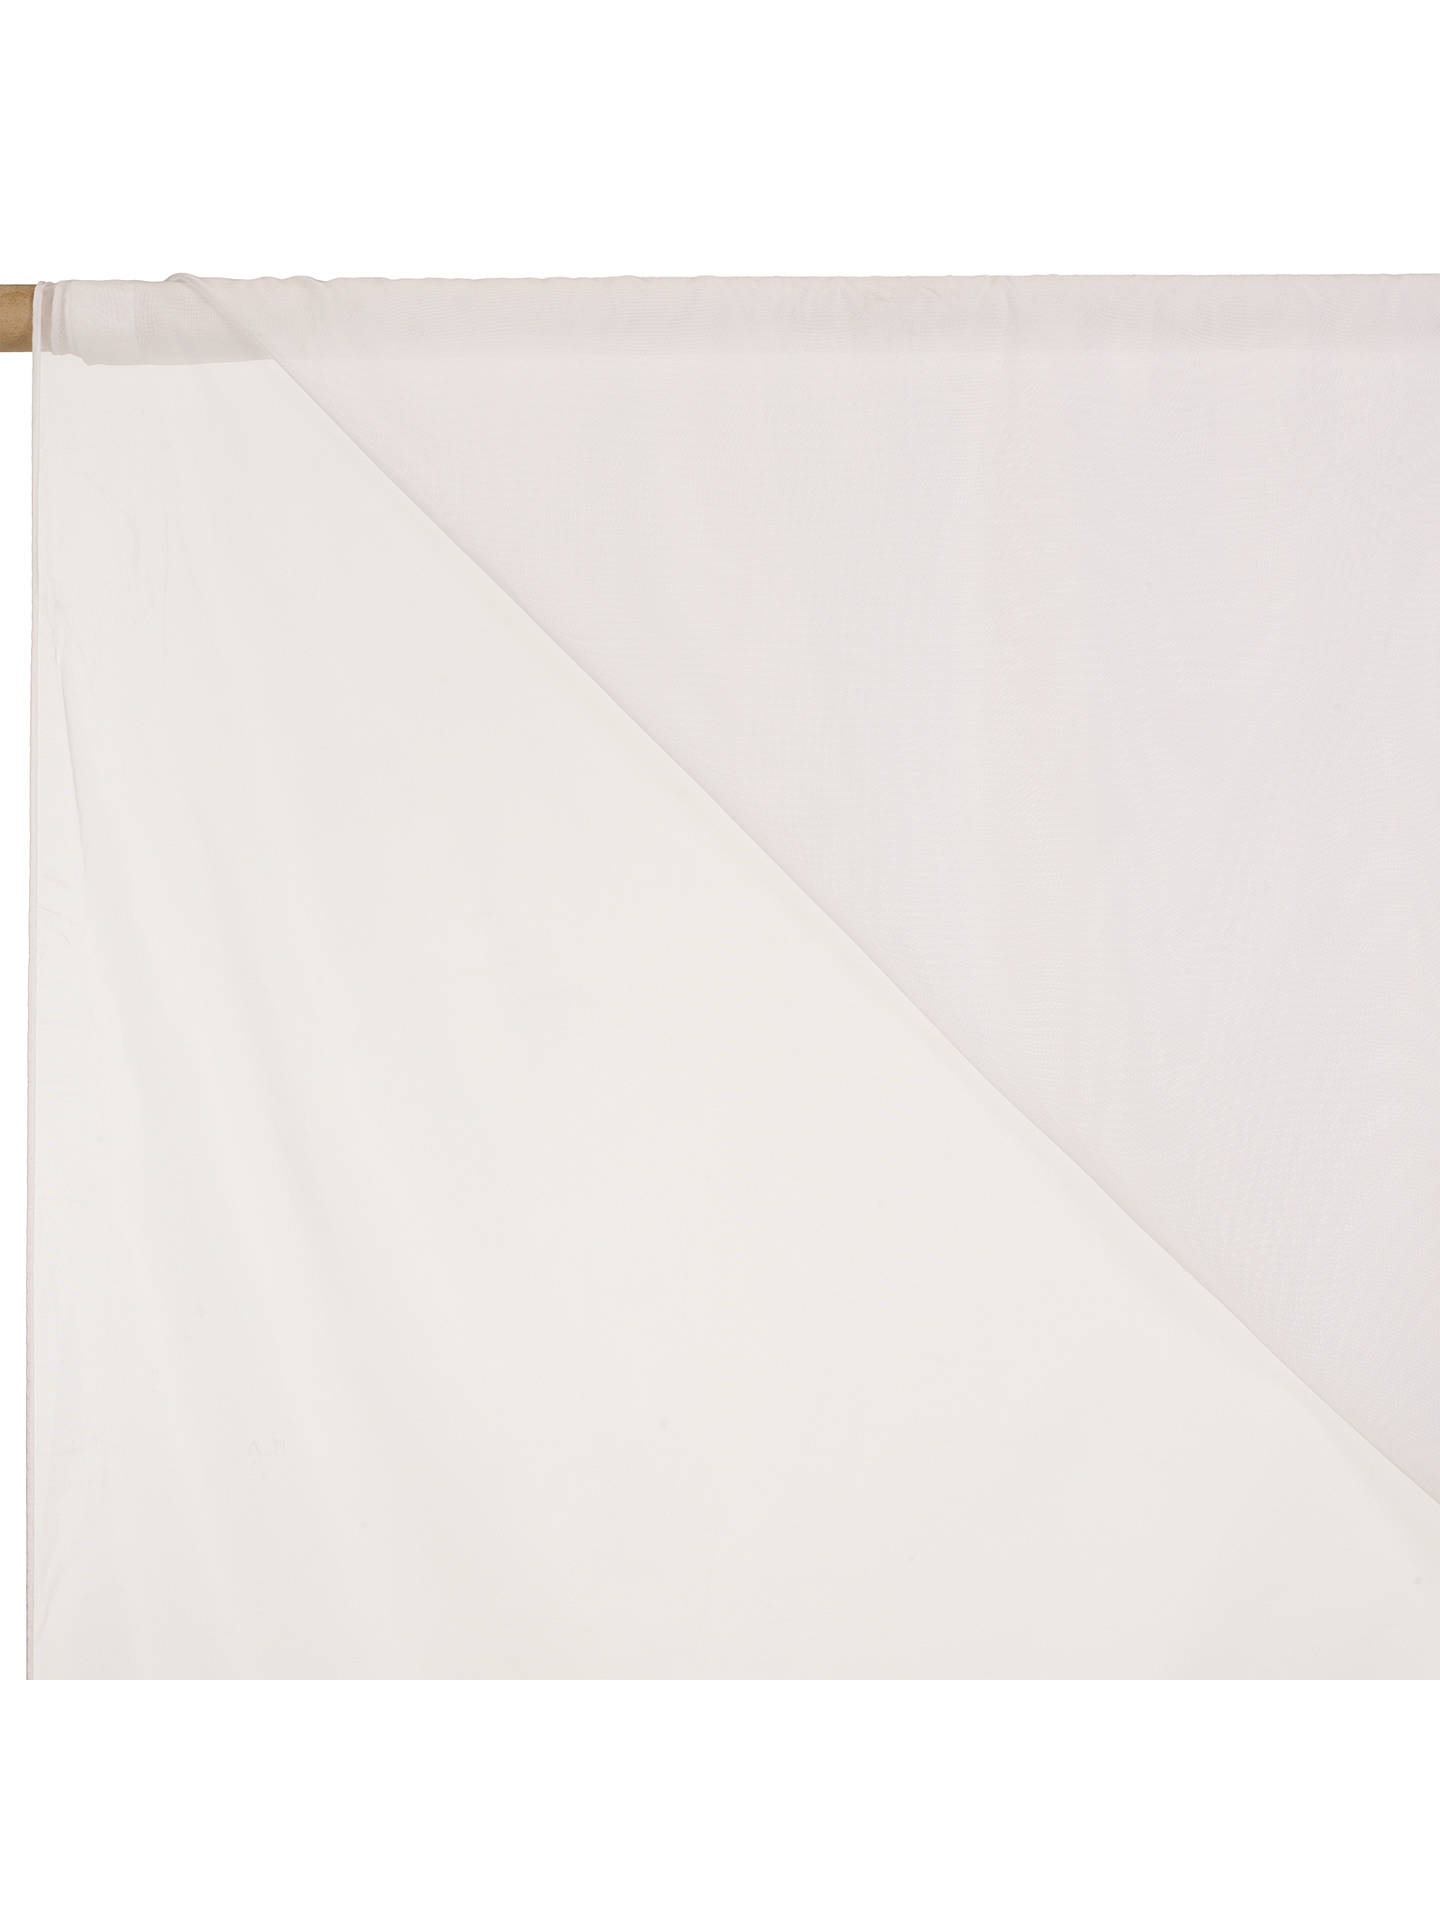 Buy John Lewis & Partners Penang Slot Headed Voile Fabric, White, Drop 122cm Online at johnlewis.com